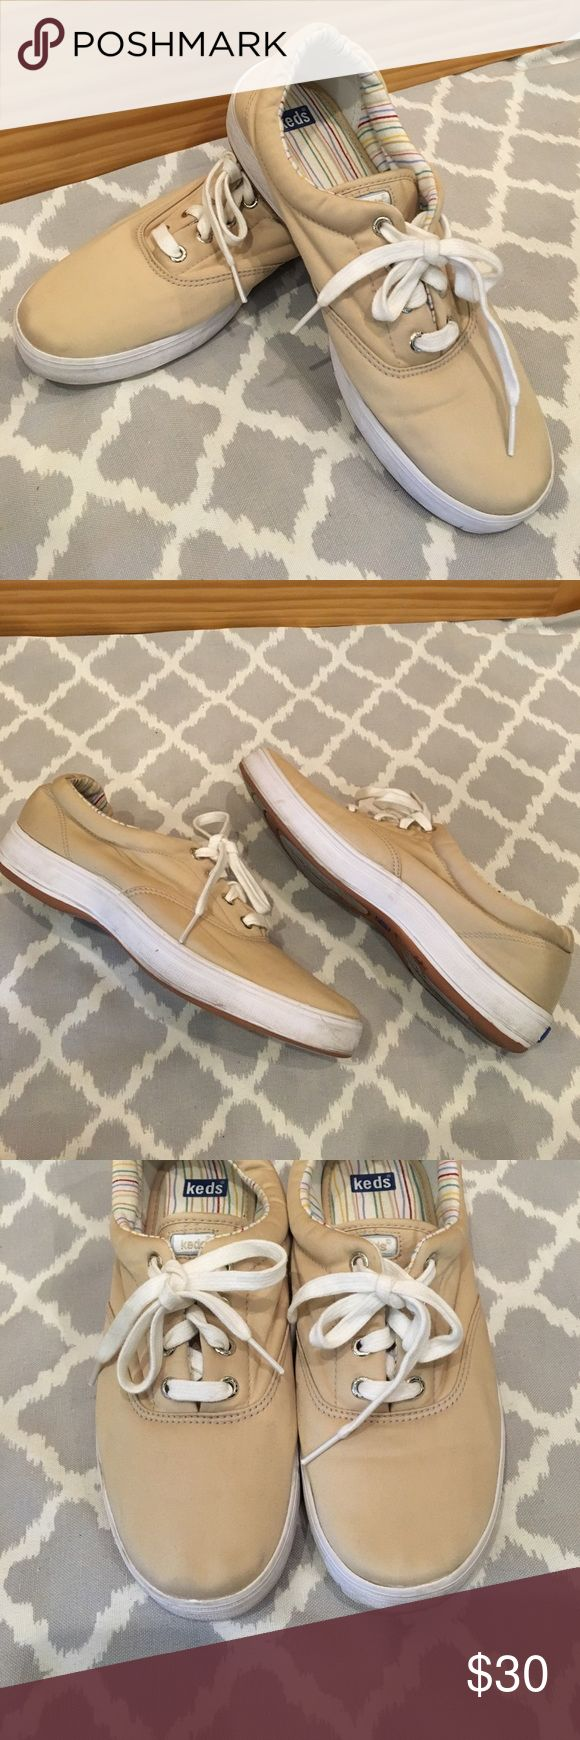 Cream Nylon Lace Up Keds Sneakers Cream Nylon Lace Up Keds Sneakers. Pre-owned but still in good condition. Keds Shoes Sneakers